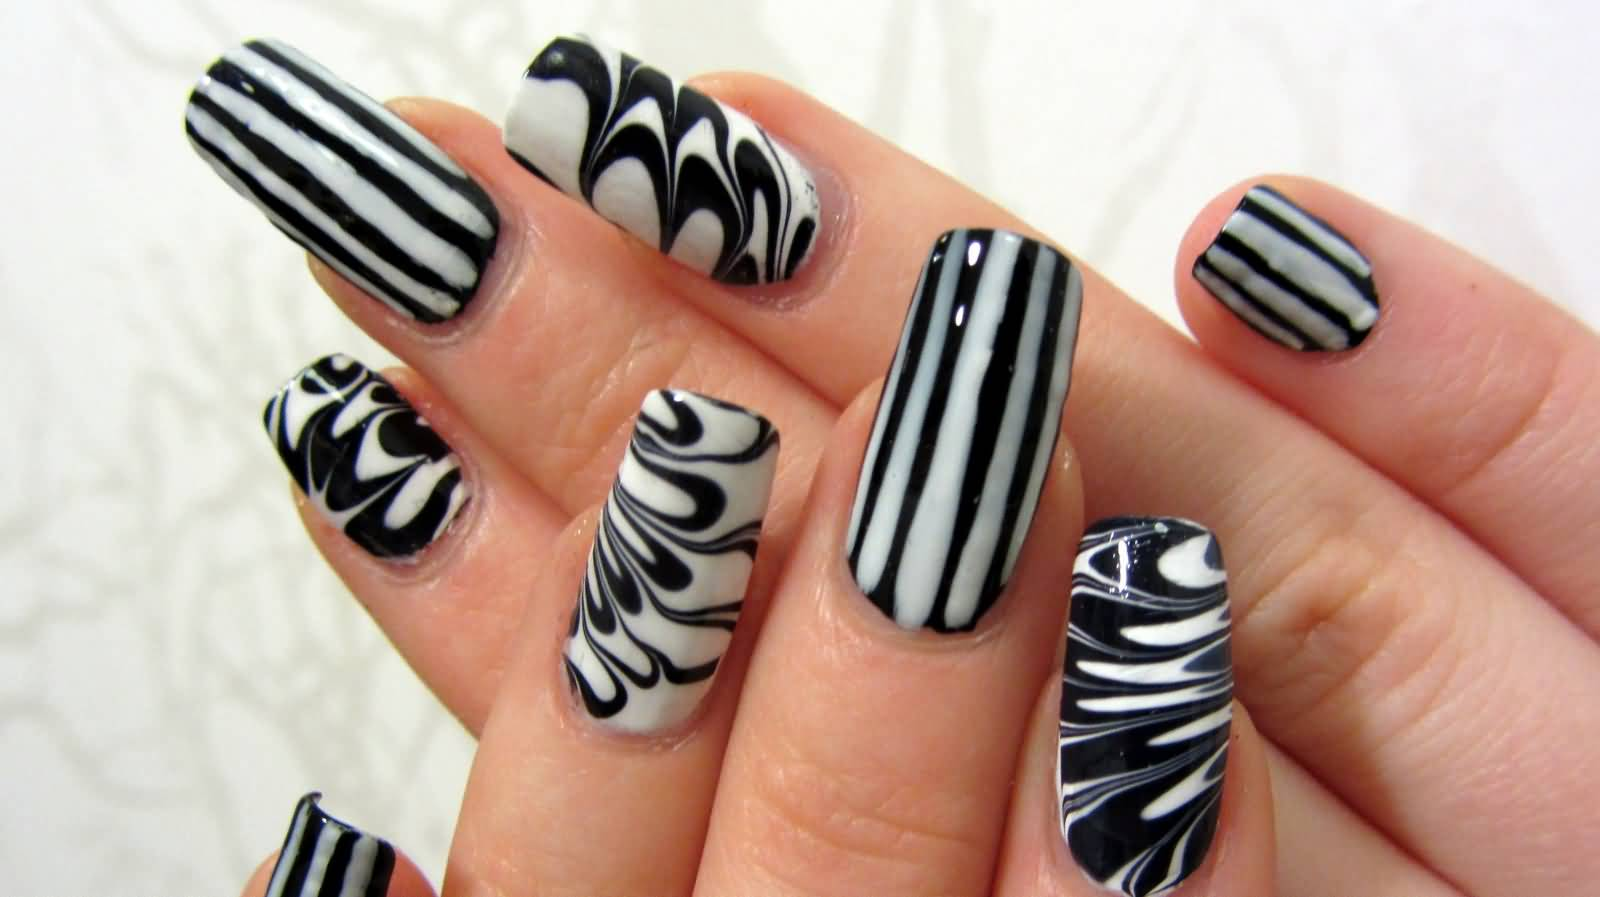 1600 897 In 55 Tremendous Black And White Nail Art Designs